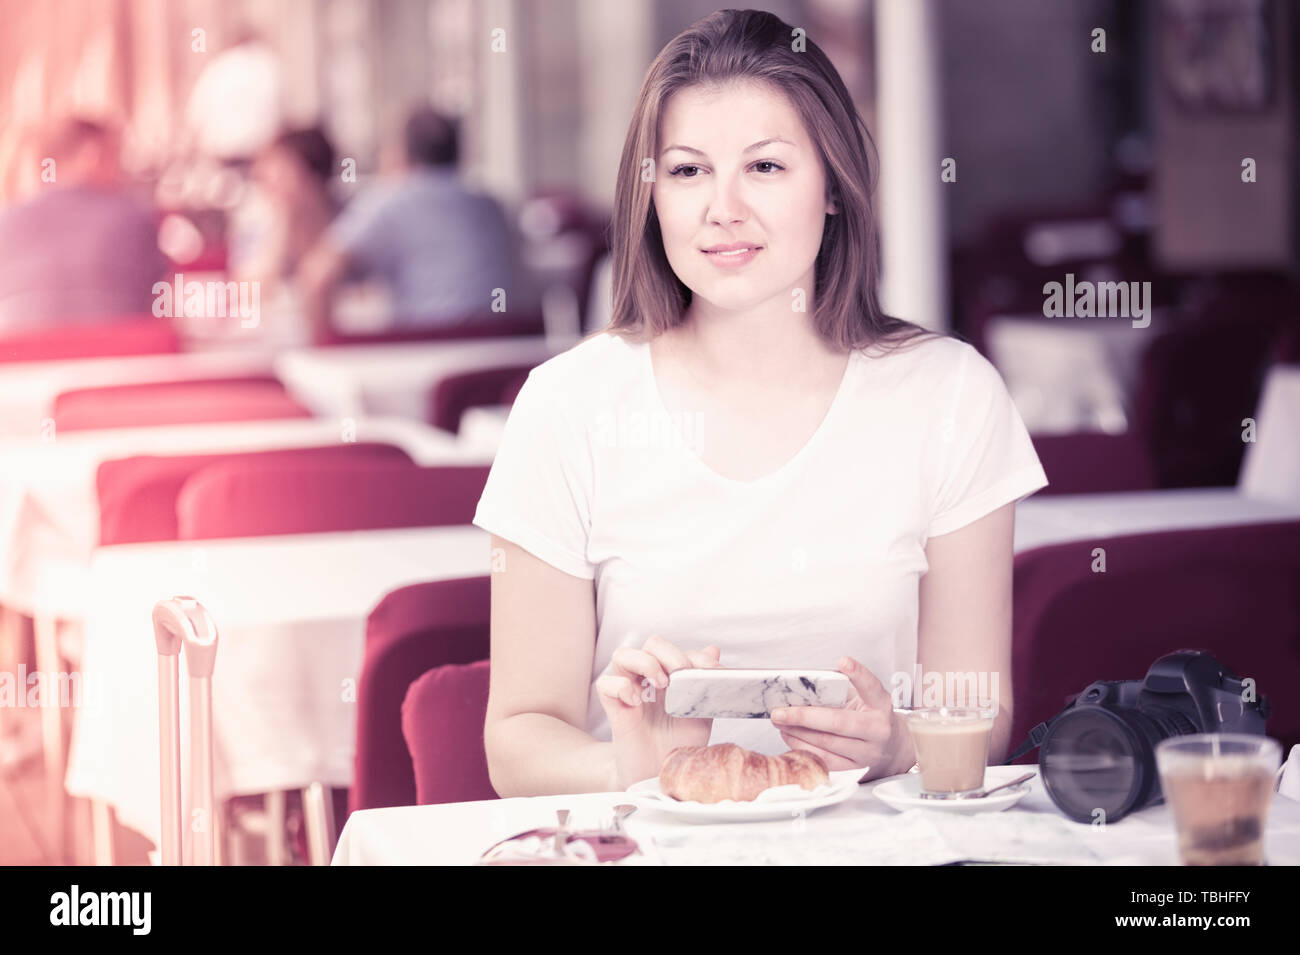 Female-tourist is chatting in the phone in cafee. - Stock Image